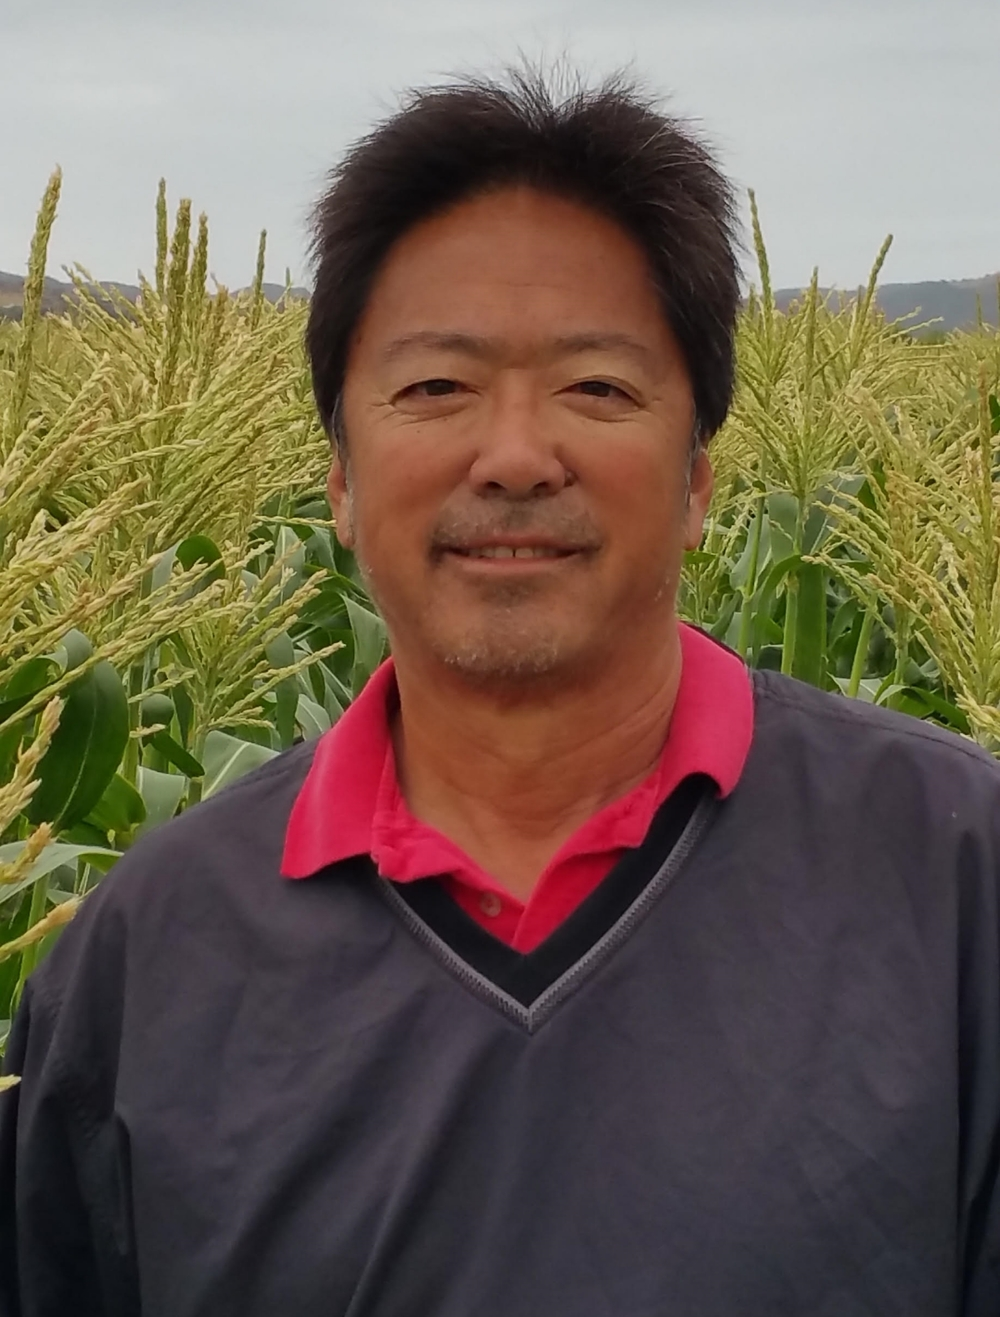 Glenn Tanaka is the owner of Tanaka Farms. Farmer Tanaka has been involved in the community through the Orange Coast Optimists Club as well as holding programs at Tanaka Farms such as the Walk the Farm, Tanaka Farms' largest event of the year.  Walk the Farm continues to bring together the community to support the farmers affected by the 2011 Tohoku earthquake and tsunami.